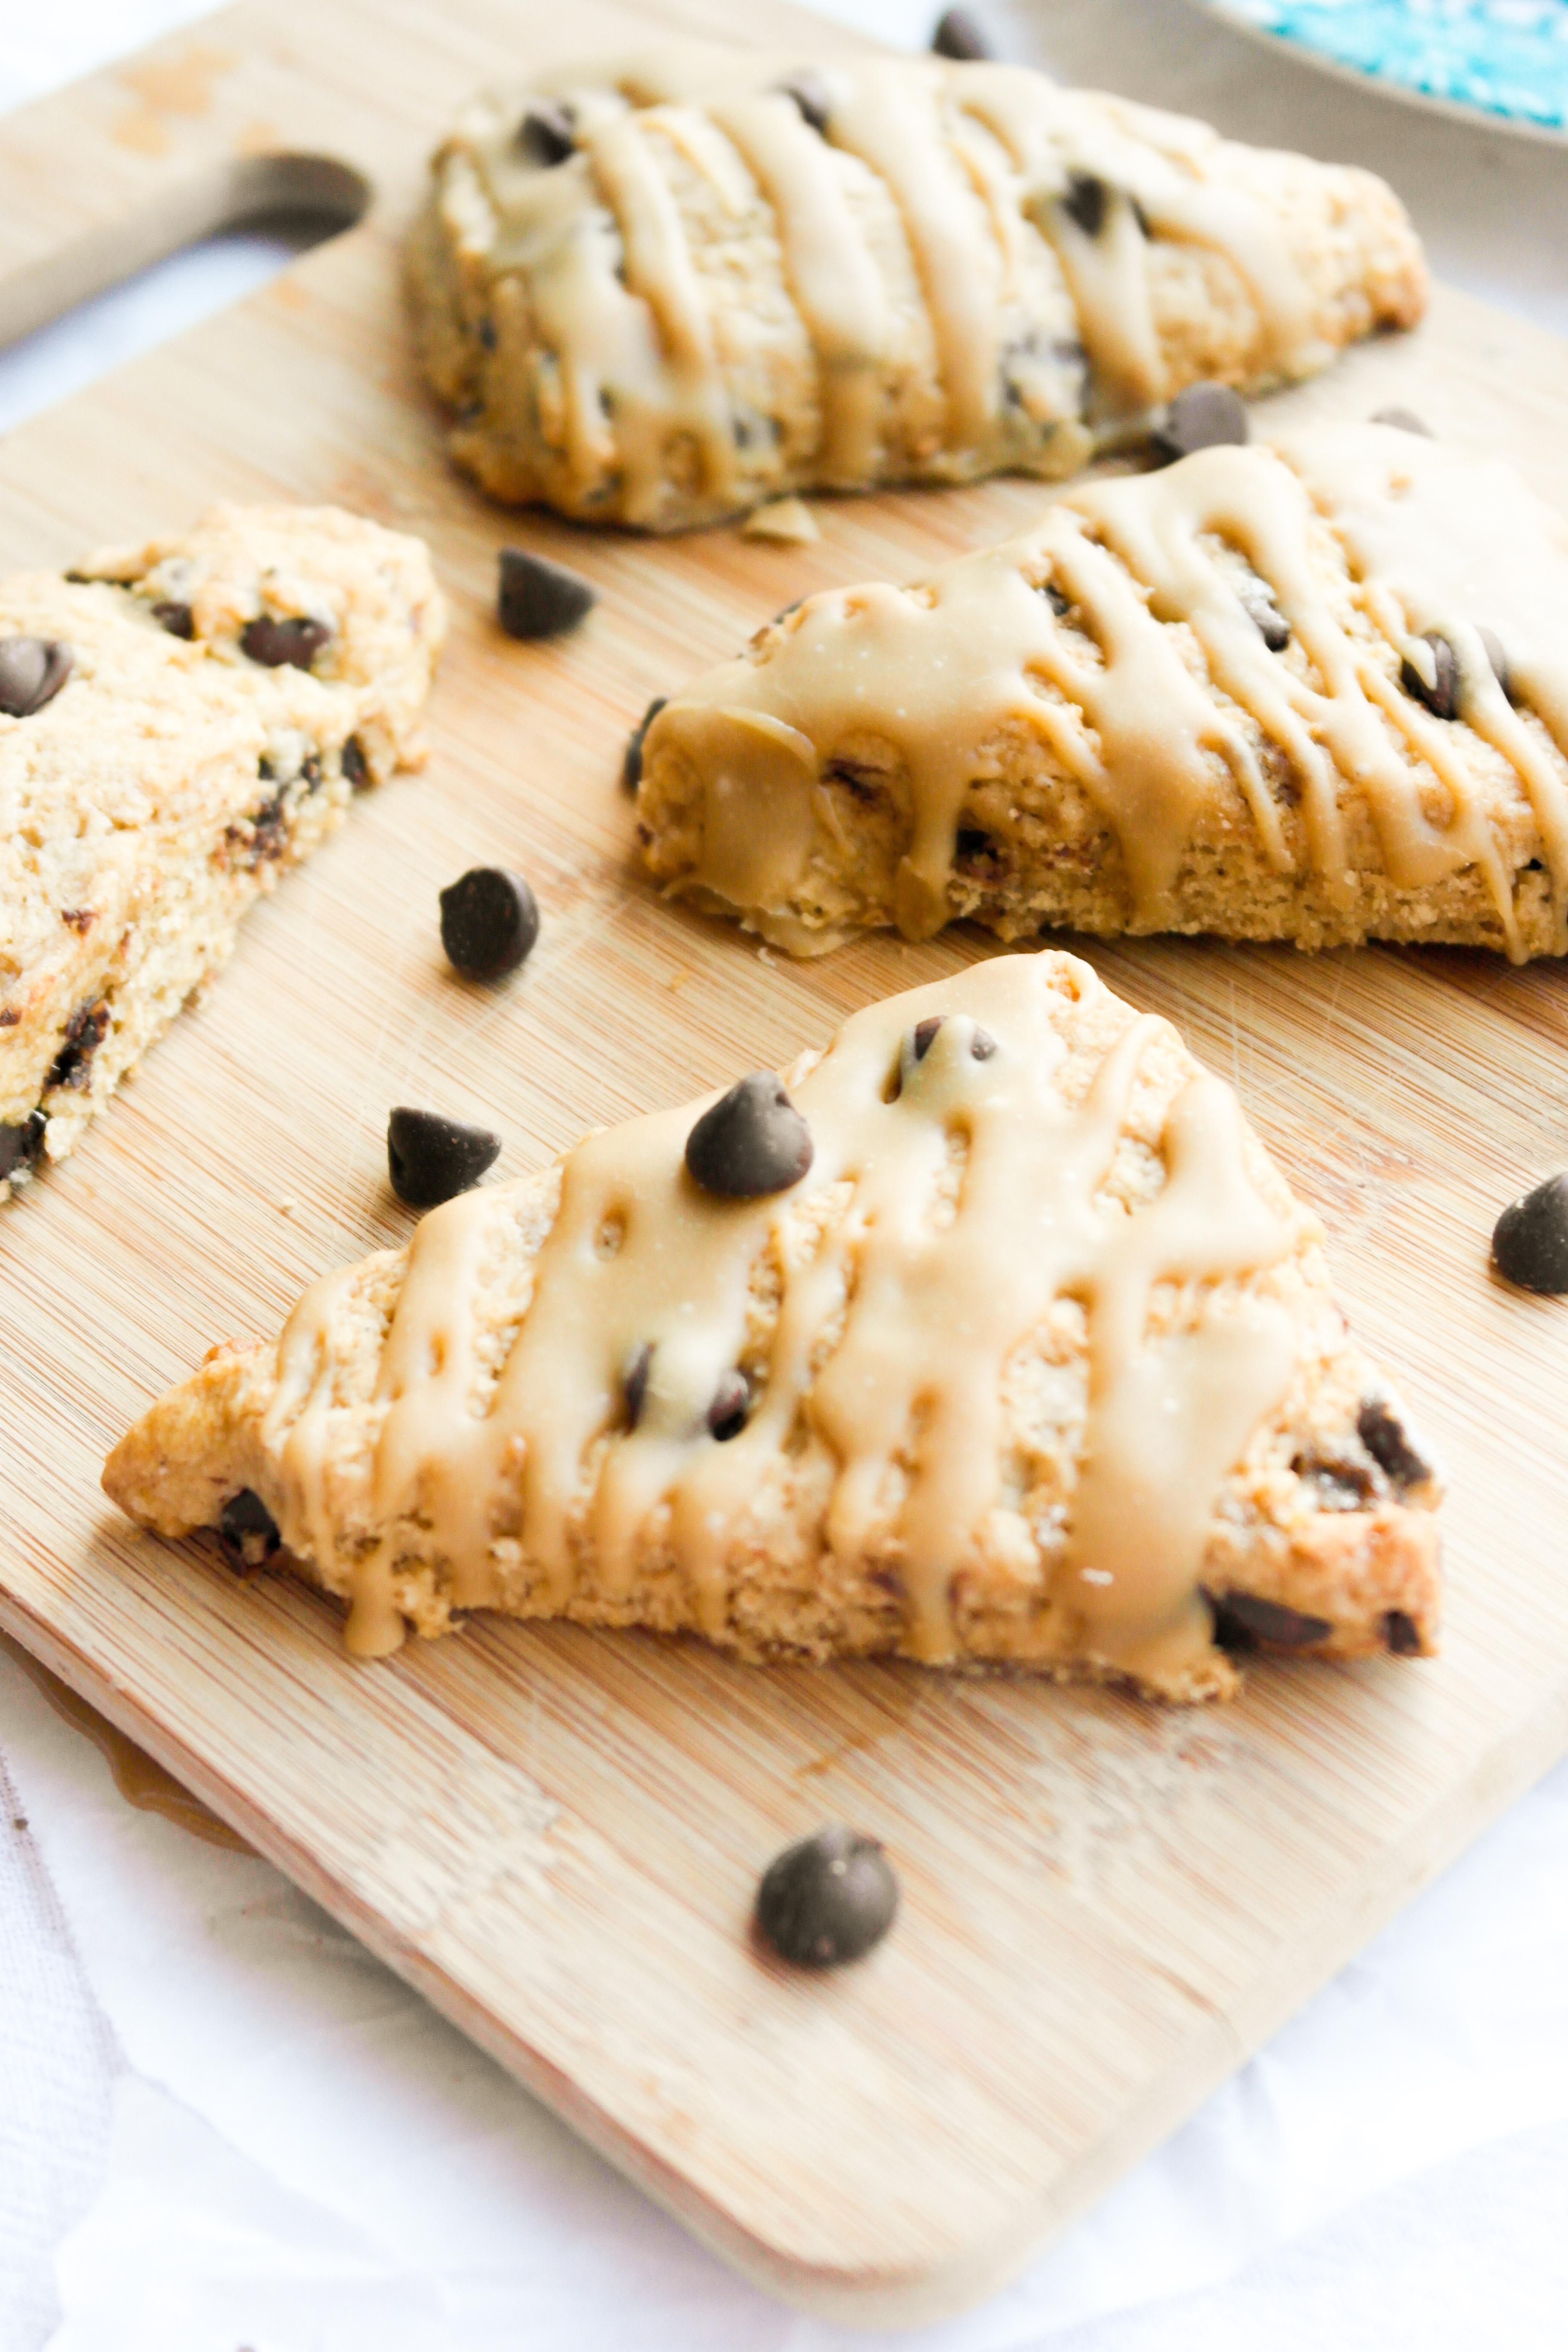 Chocolate Chip Scones + Caramel Glaze – Baking Is A Science